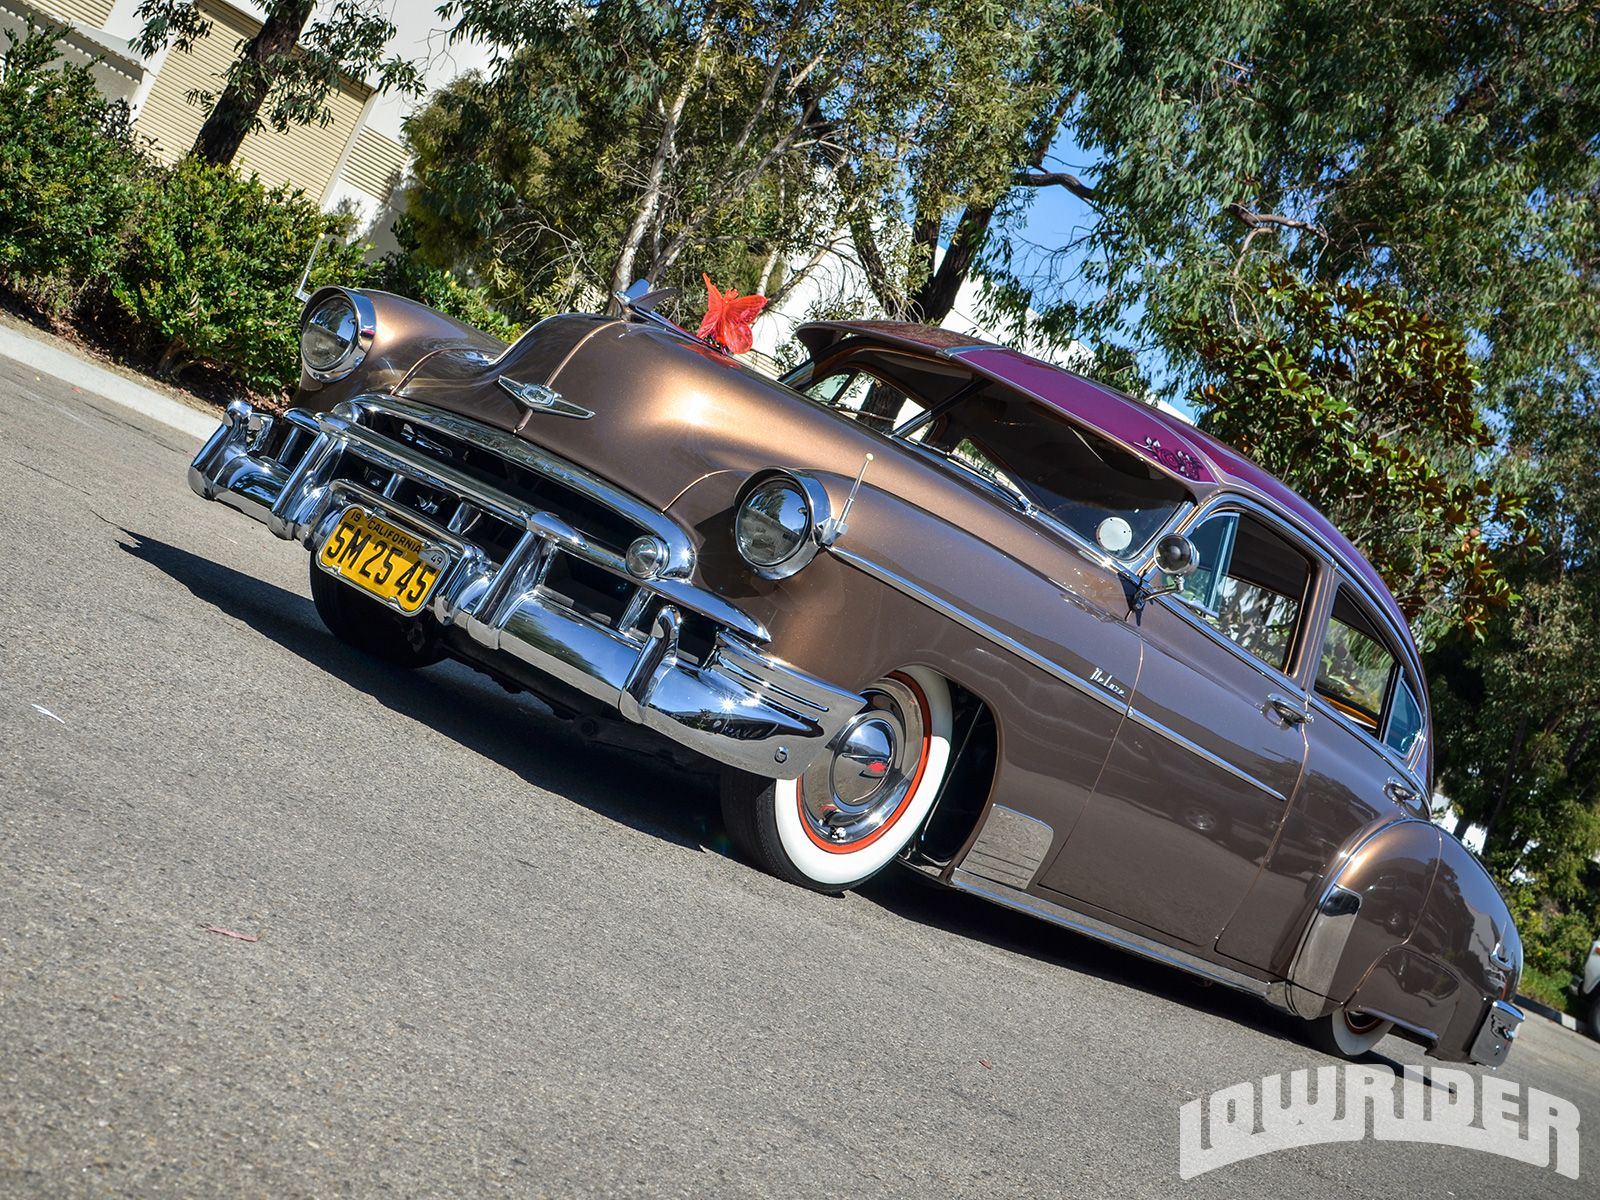 1949 Chevy Bomb Lowriders Lowrider Cars Low Riding